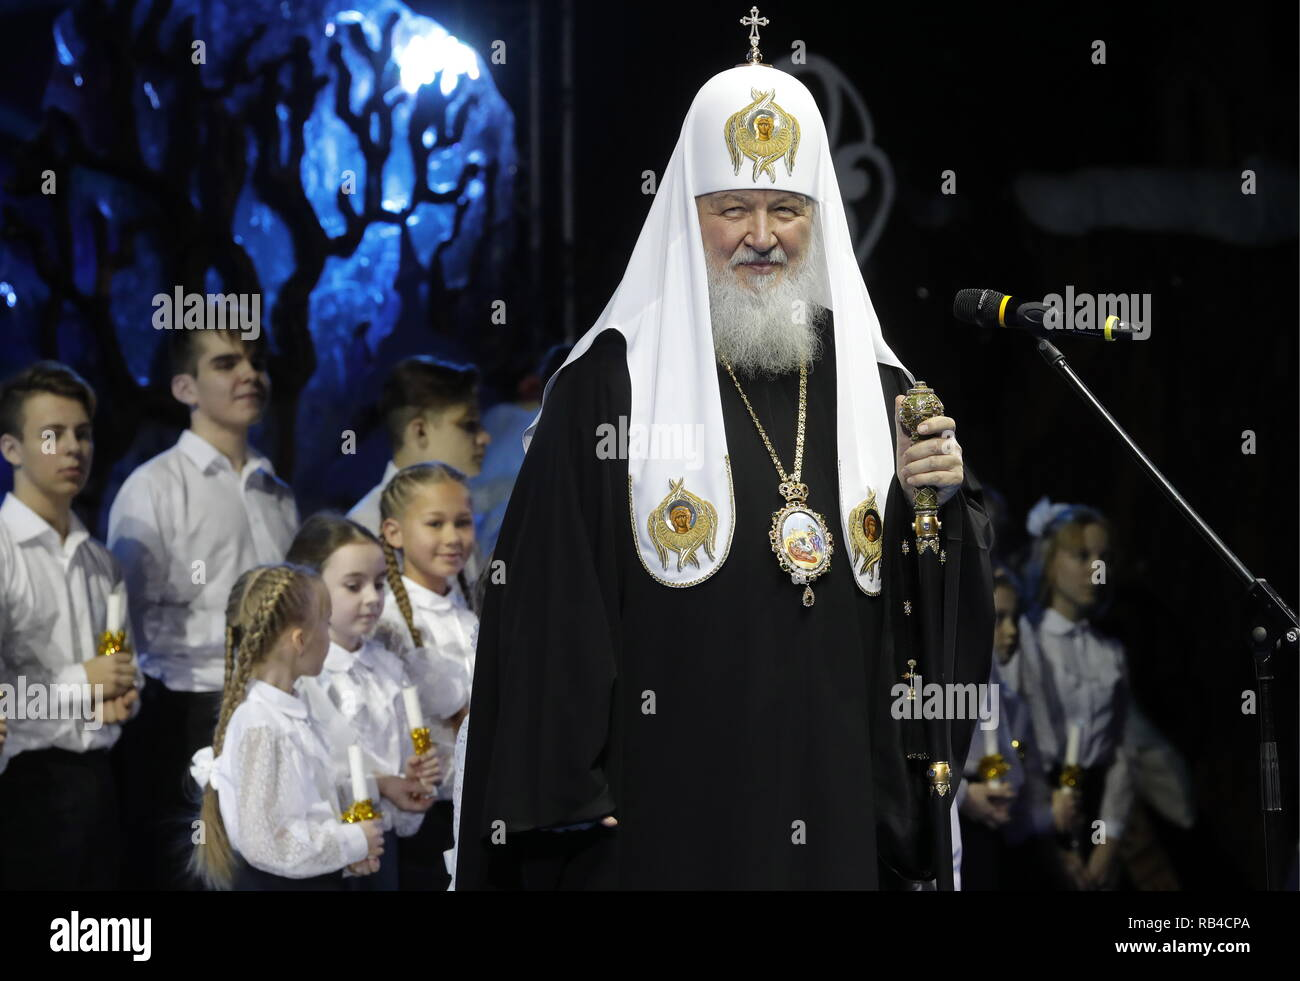 Moscow, Russia. 07th Jan, 2019. MOSCOW, RUSSIA - JANUARY 7, 2019: Patriarch Kirill of Moscow and All-Russia speaks during a children's Christmas party at a hall for church assemblies of the Cathedral of Christ the Saviour. The Russian Orthodox Church celebrates Christmas according to the Julian calendar. Mikhail Japaridze/TASS Credit: ITAR-TASS News Agency/Alamy Live News - Stock Image